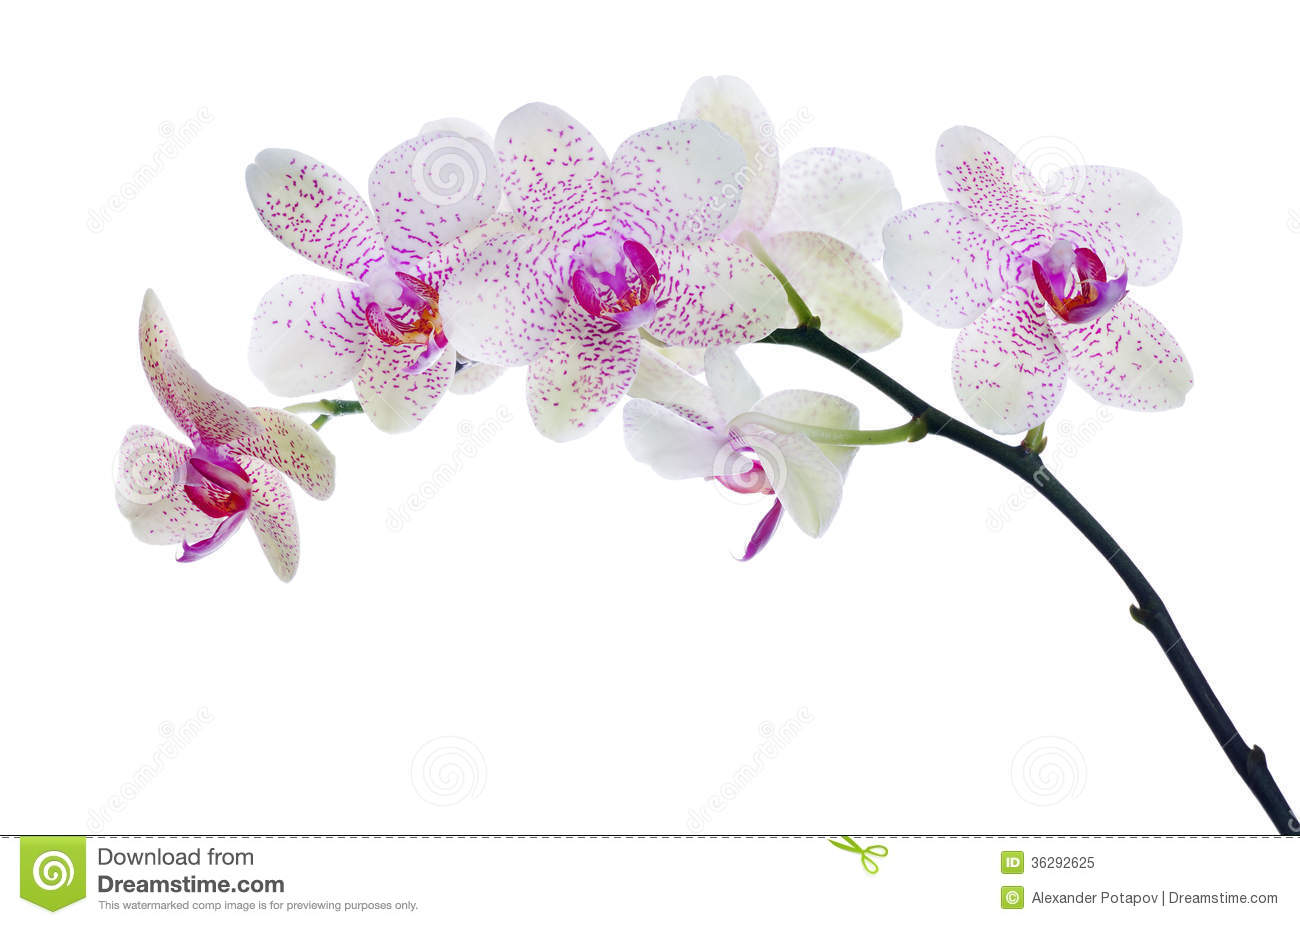 White And Pink Orchids Wallpaper - wallpaper.